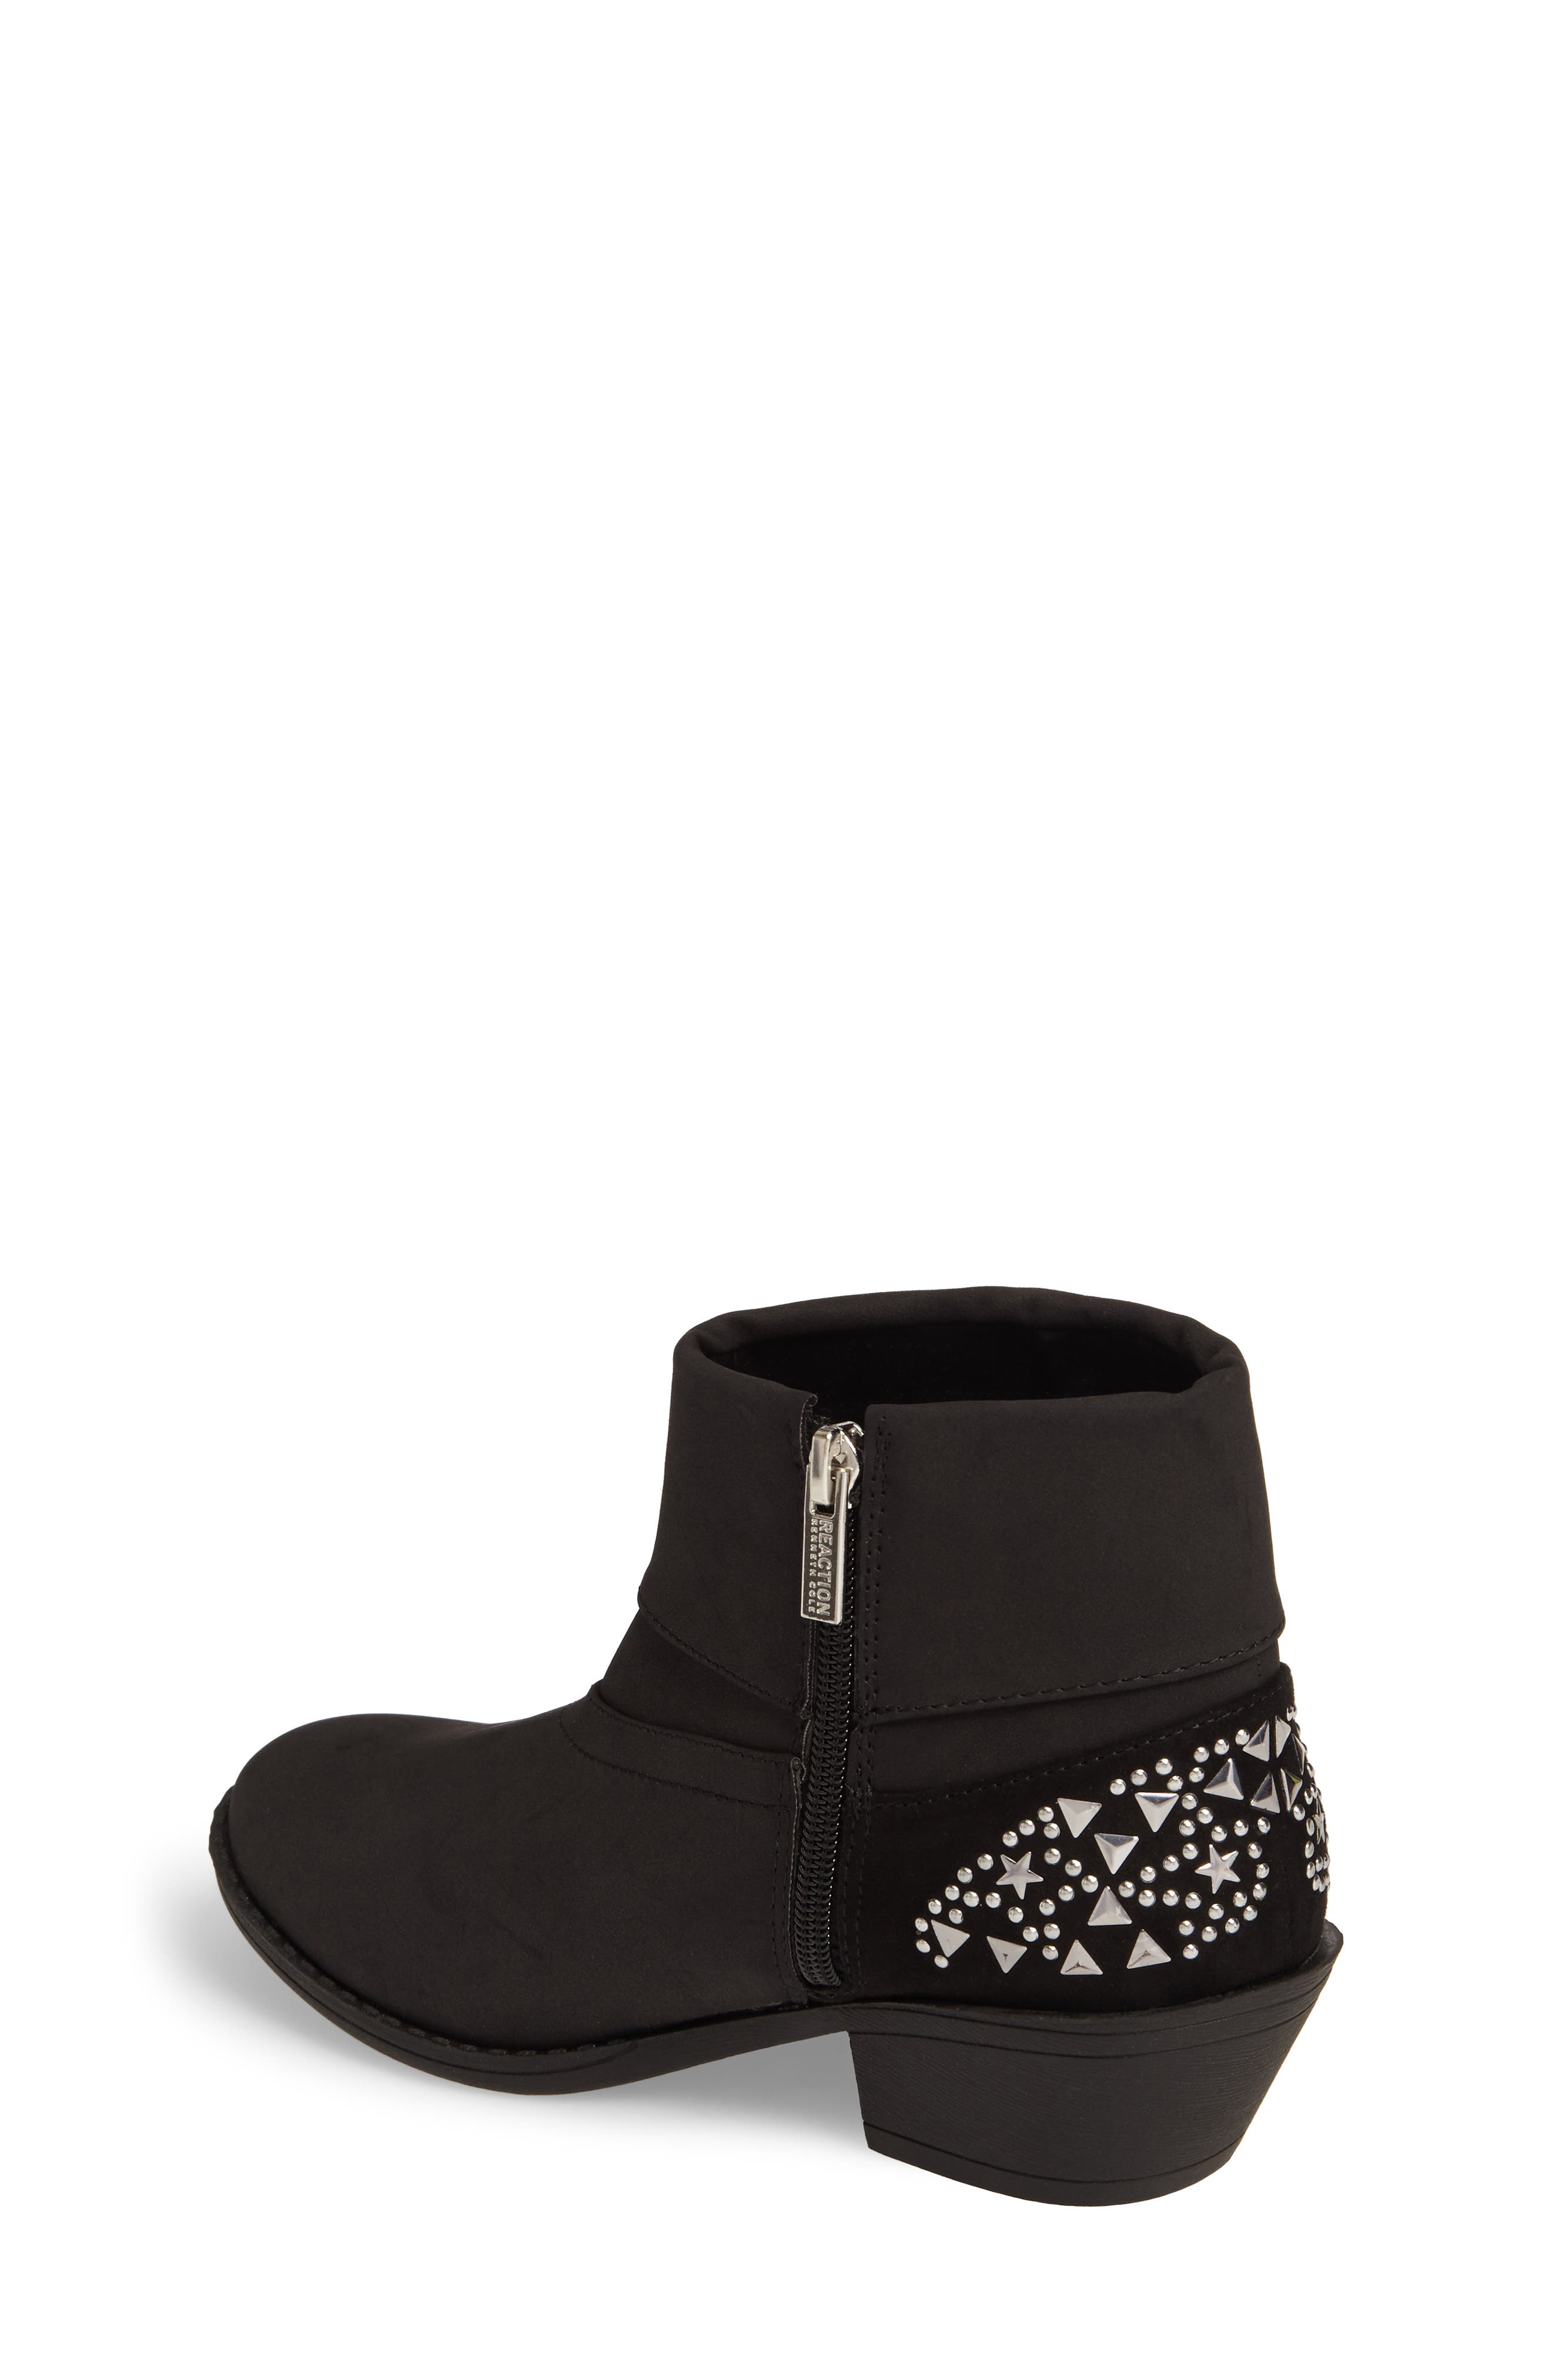 Taylor Star Bootie,                             Alternate thumbnail 2, color,                             001